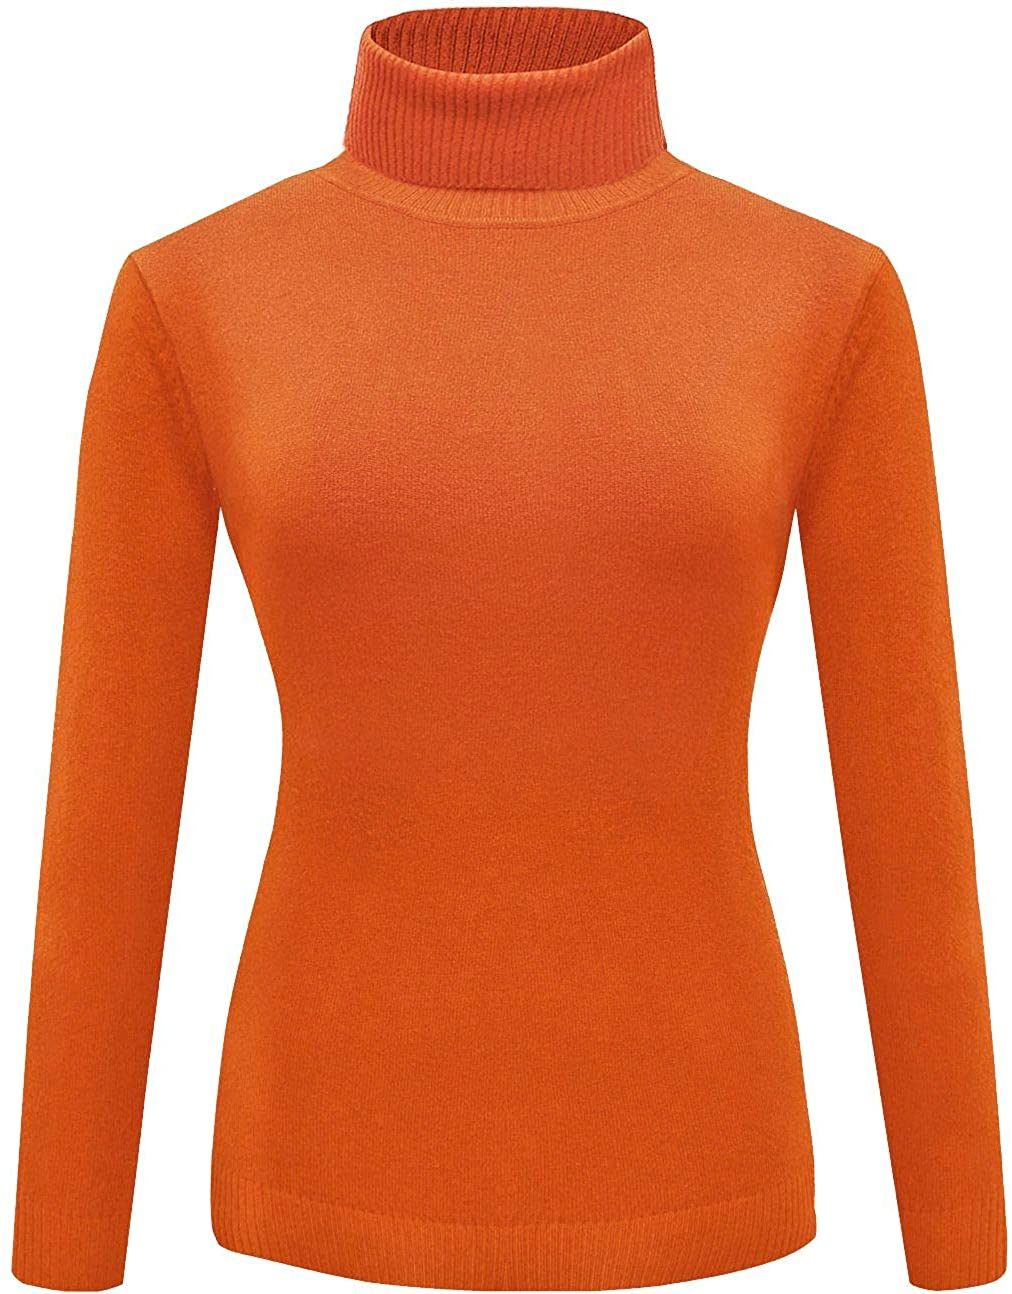 For G and PL Women's Halloween Velma Costume Orange Solid Turtleneck Knitted Sweatshirt